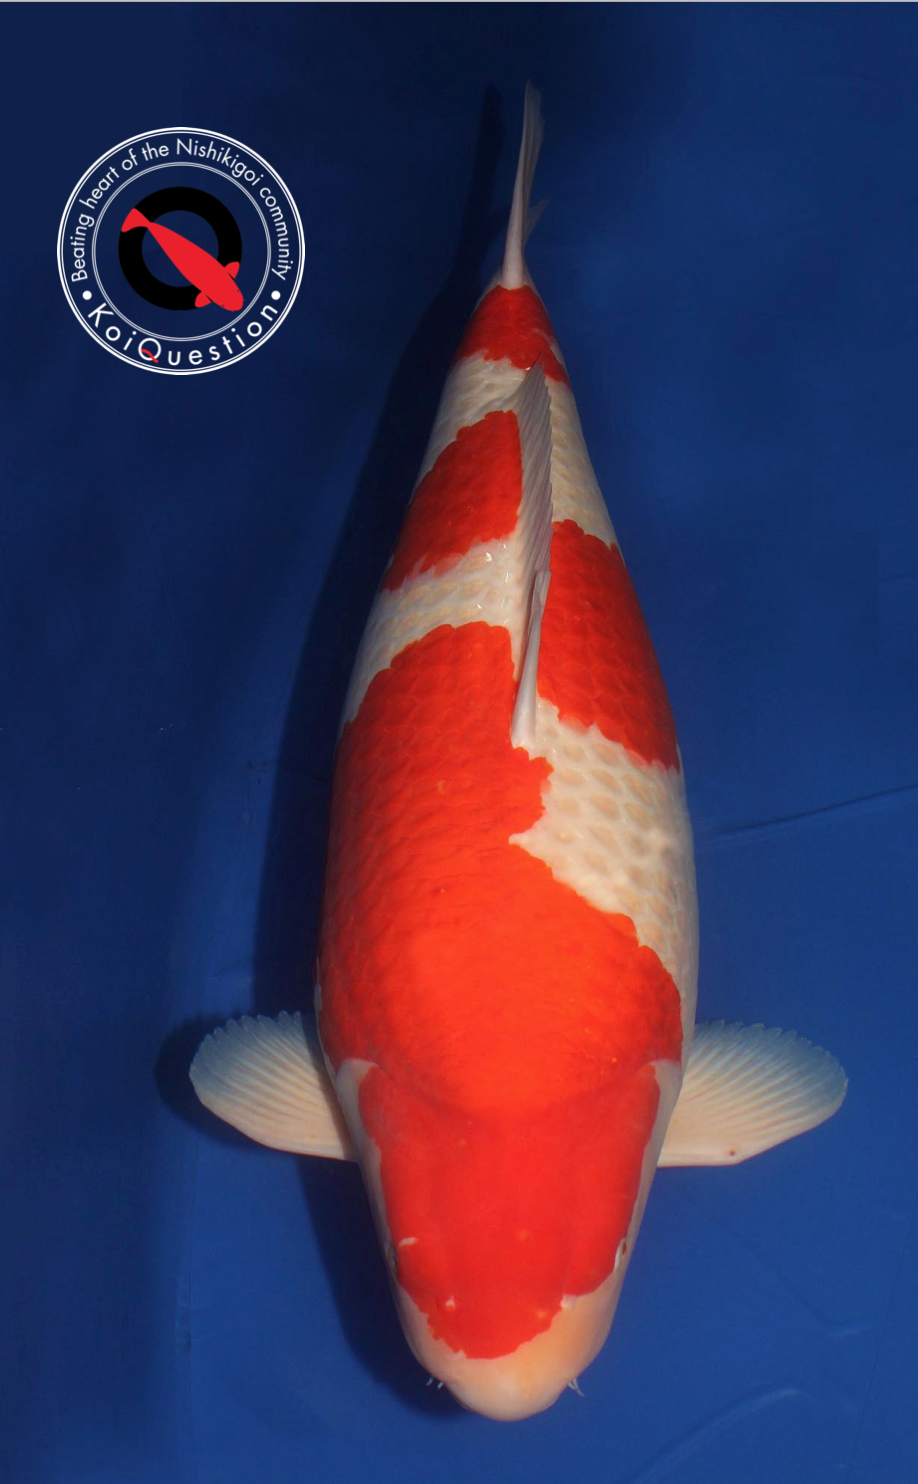 Shining Rose Kohaku Jumbo Champion A Interkoi Kalkar 2018